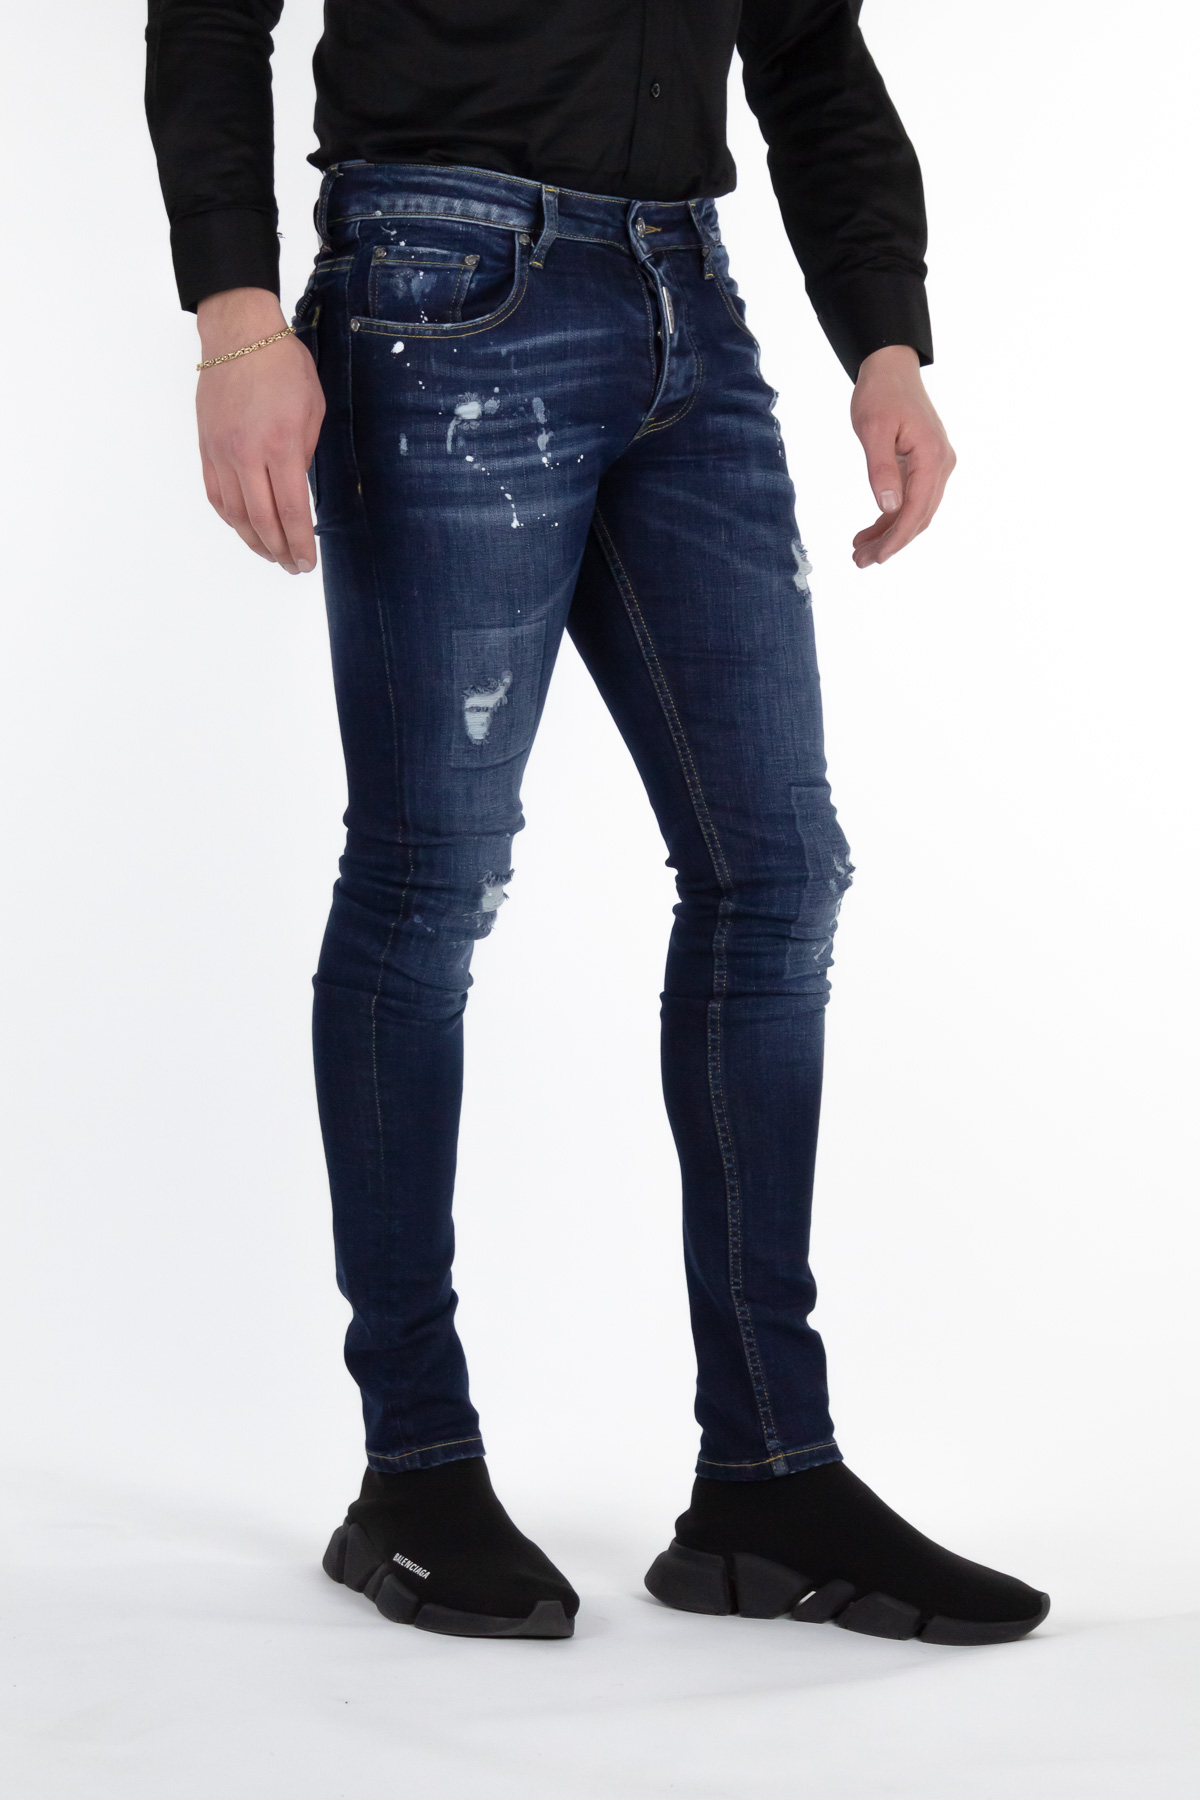 Richesse Florence Blue Jeans 2236-2